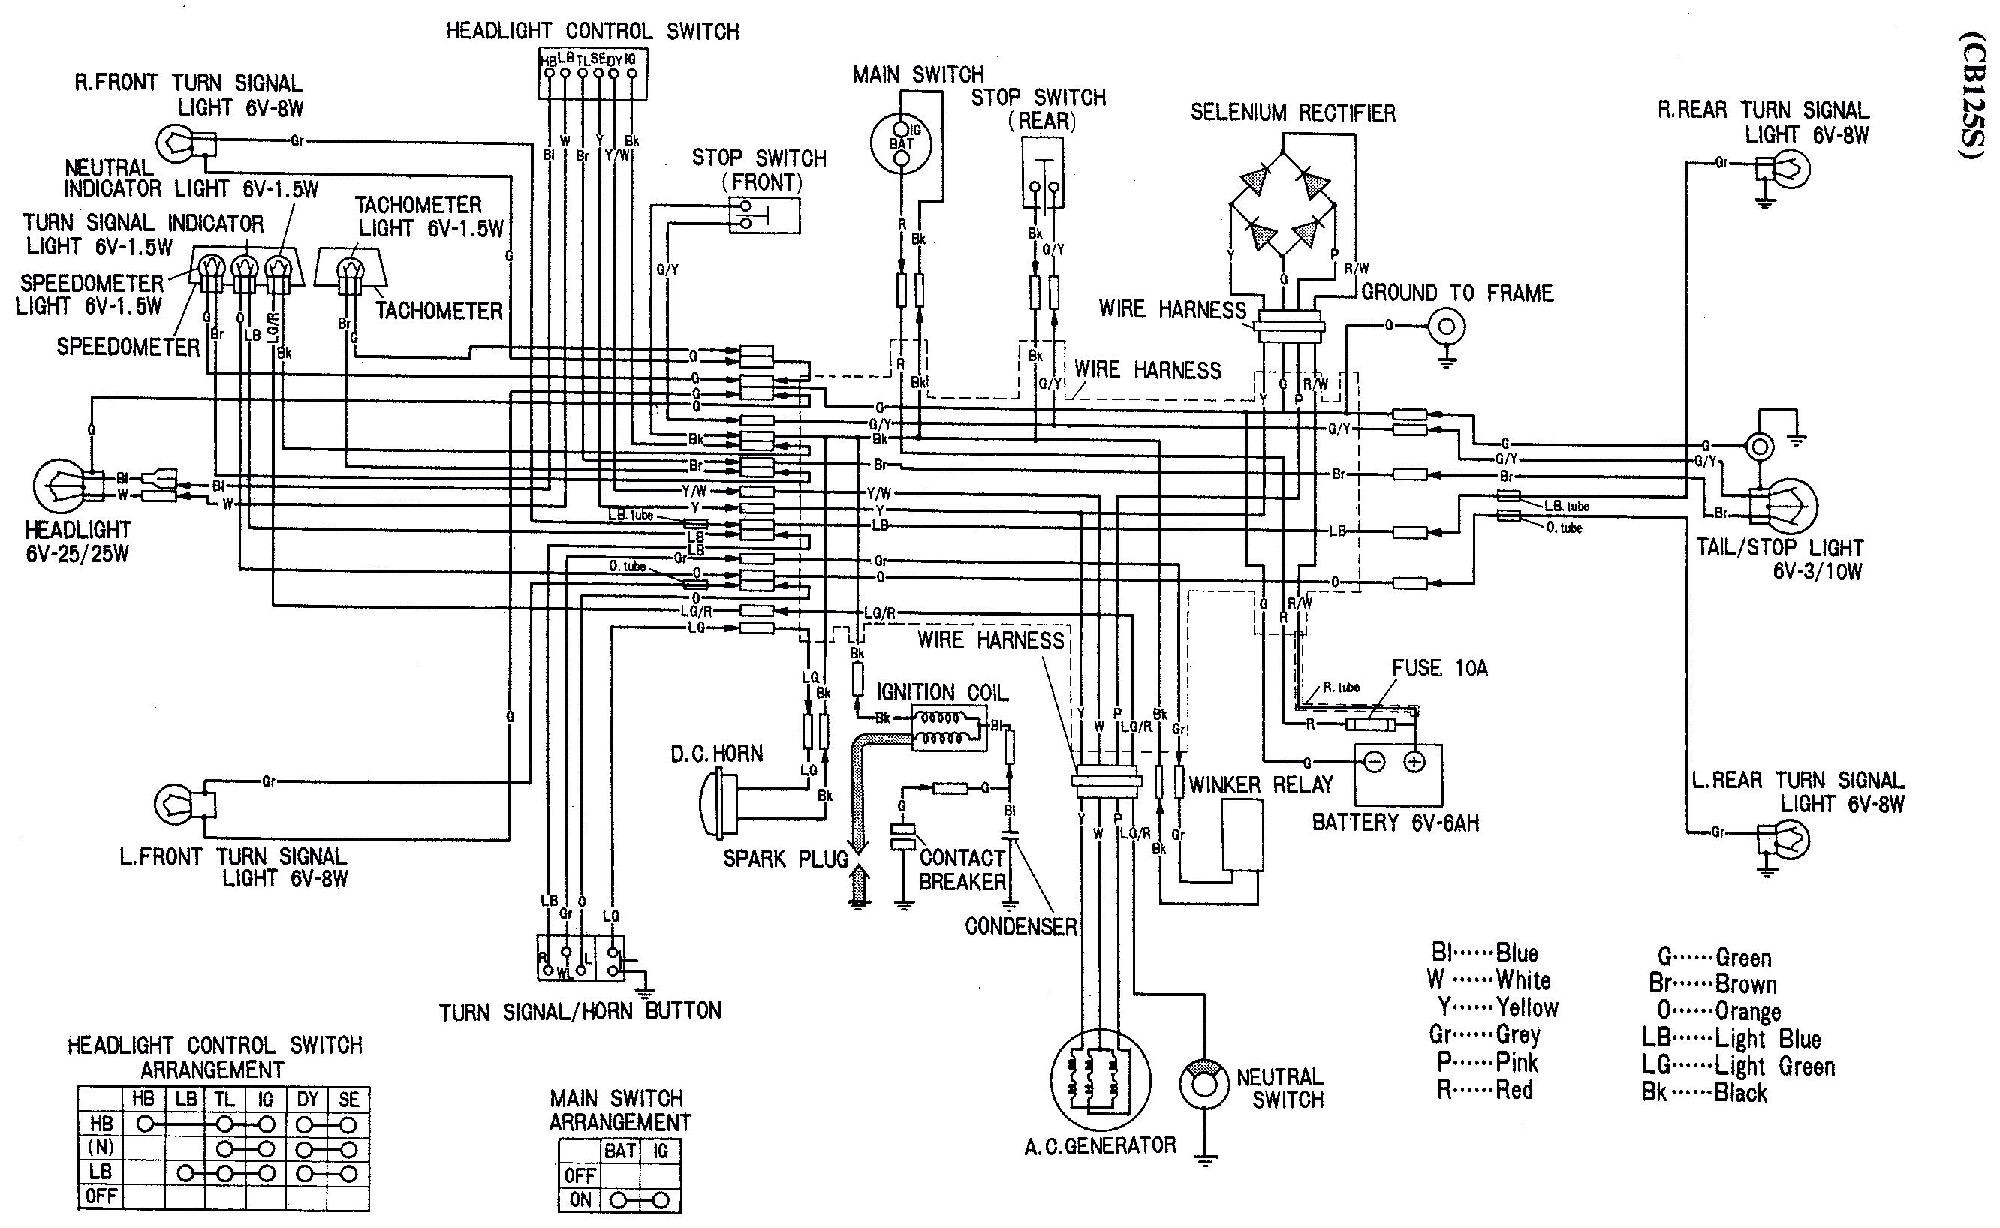 [WRG-1669] Maxon Cb Power Wiring Diagram